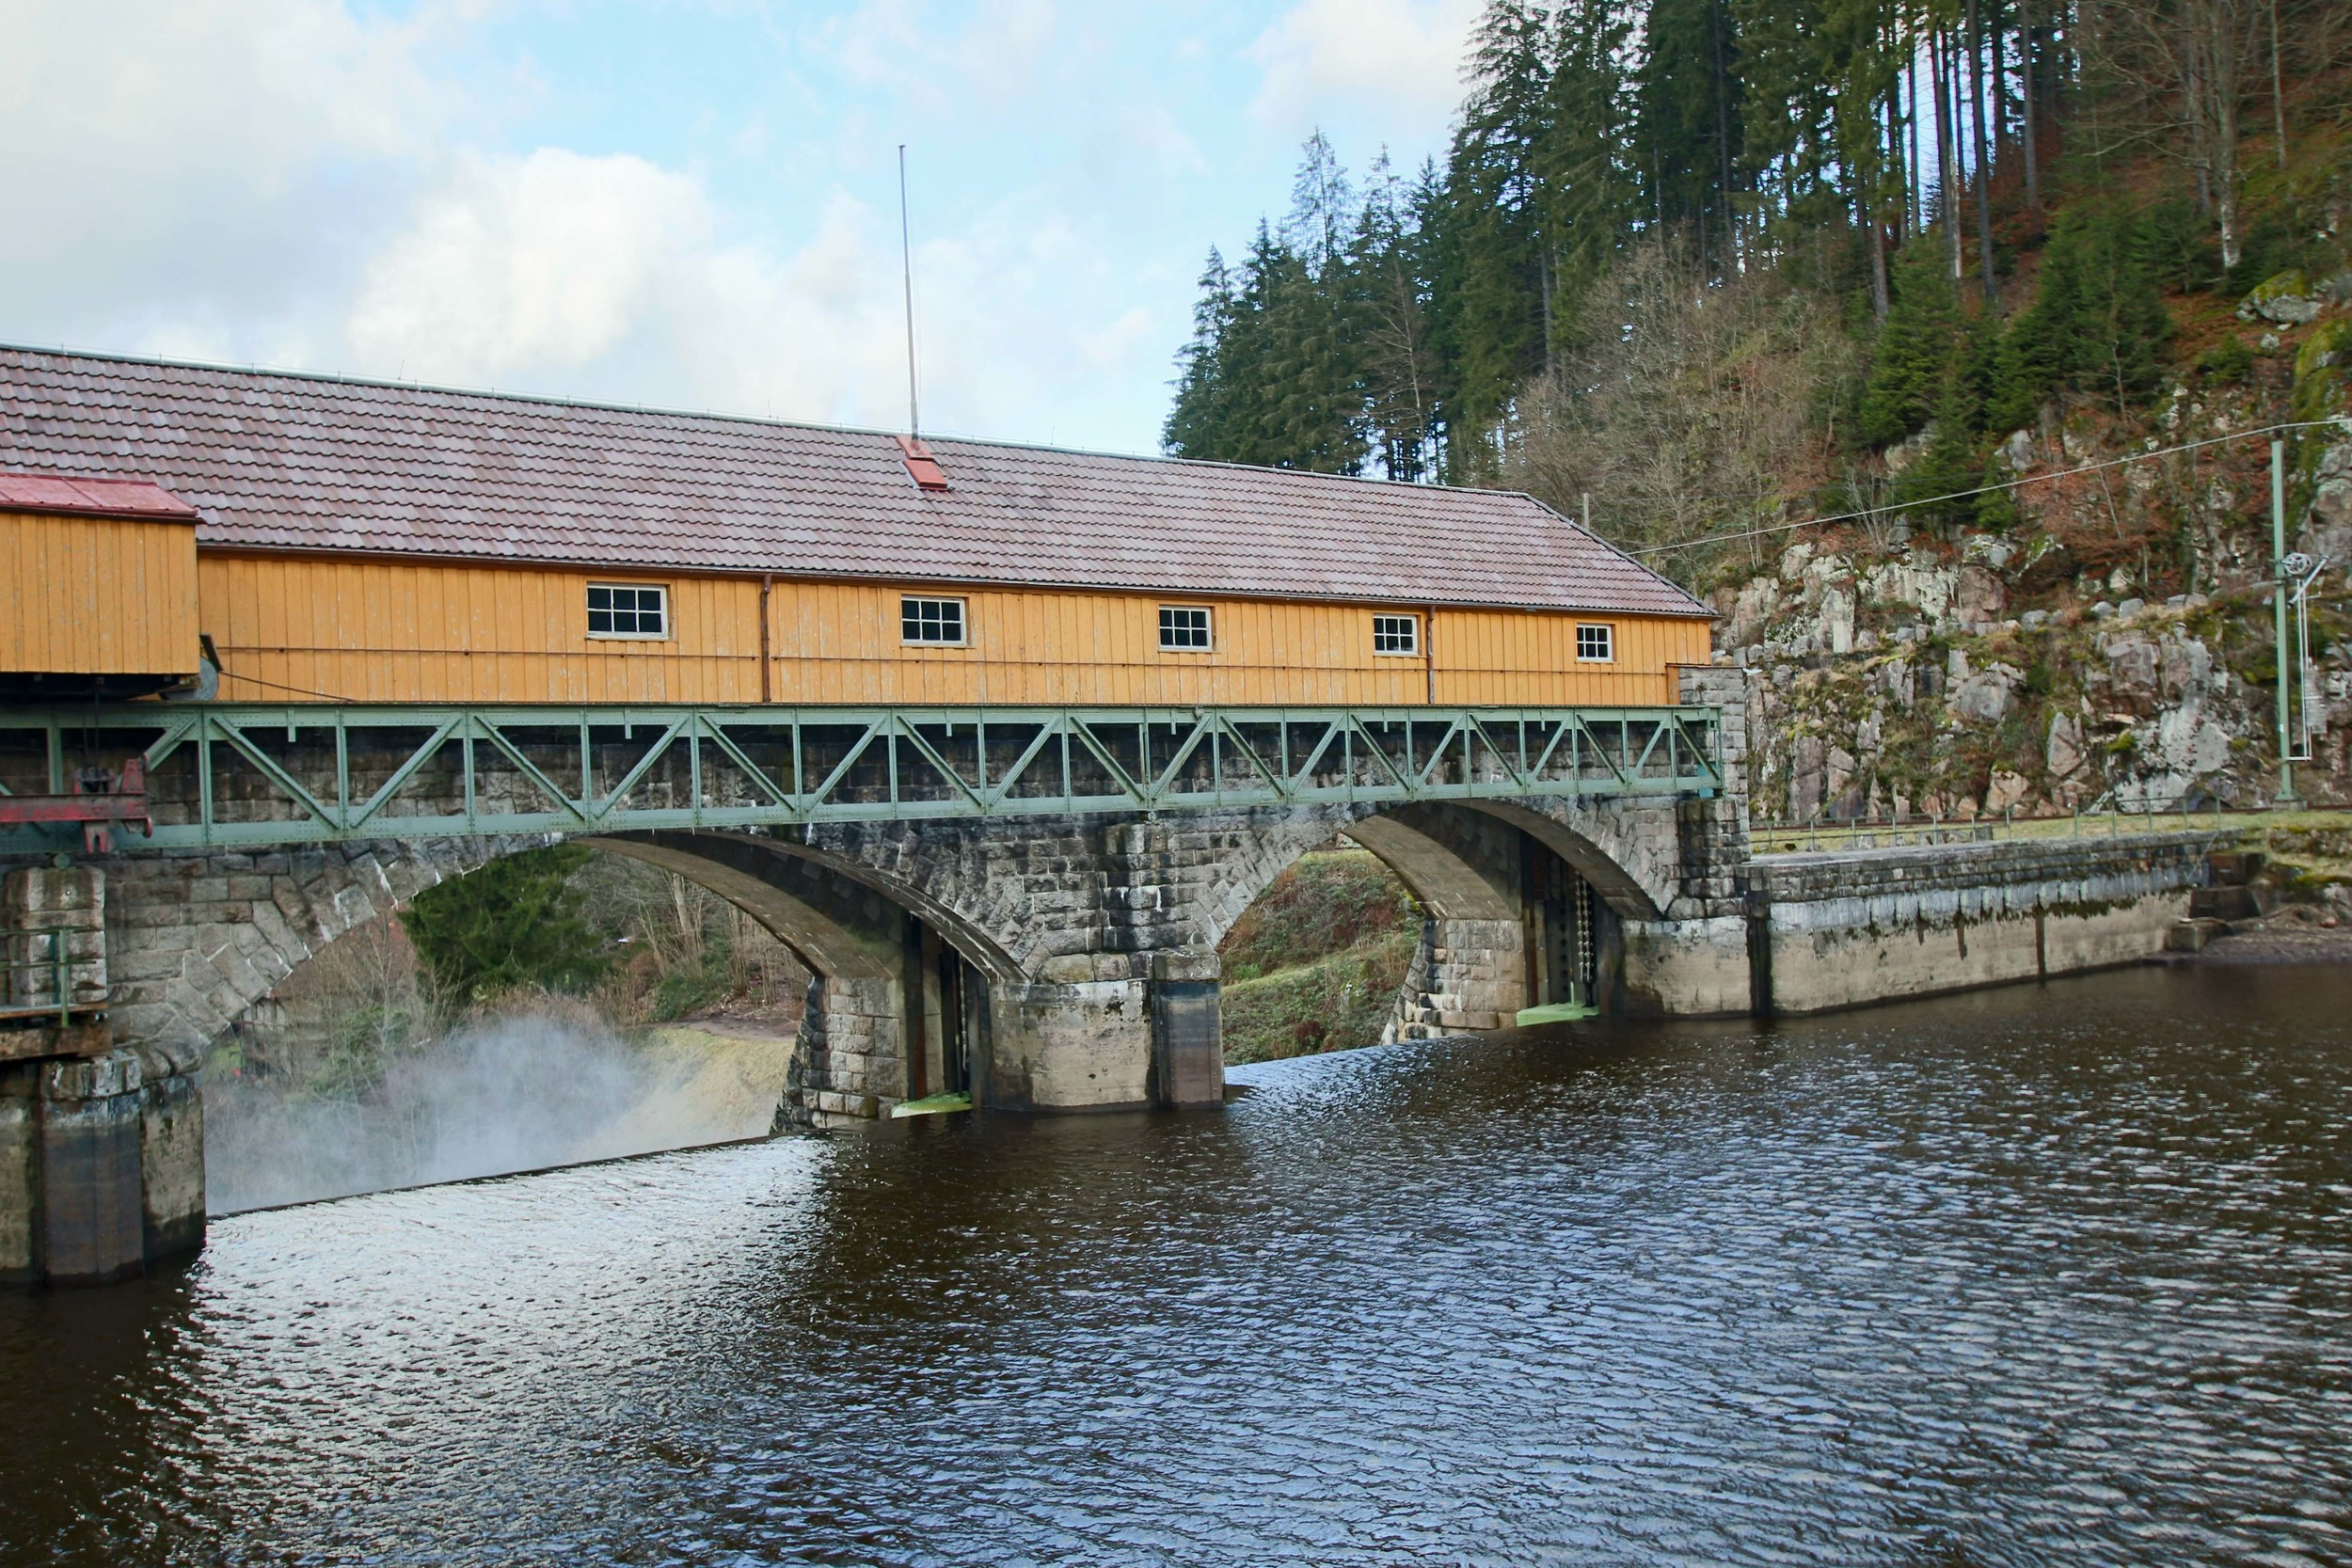 Control room over a large dam along one of the larger rivers in the Black Forest